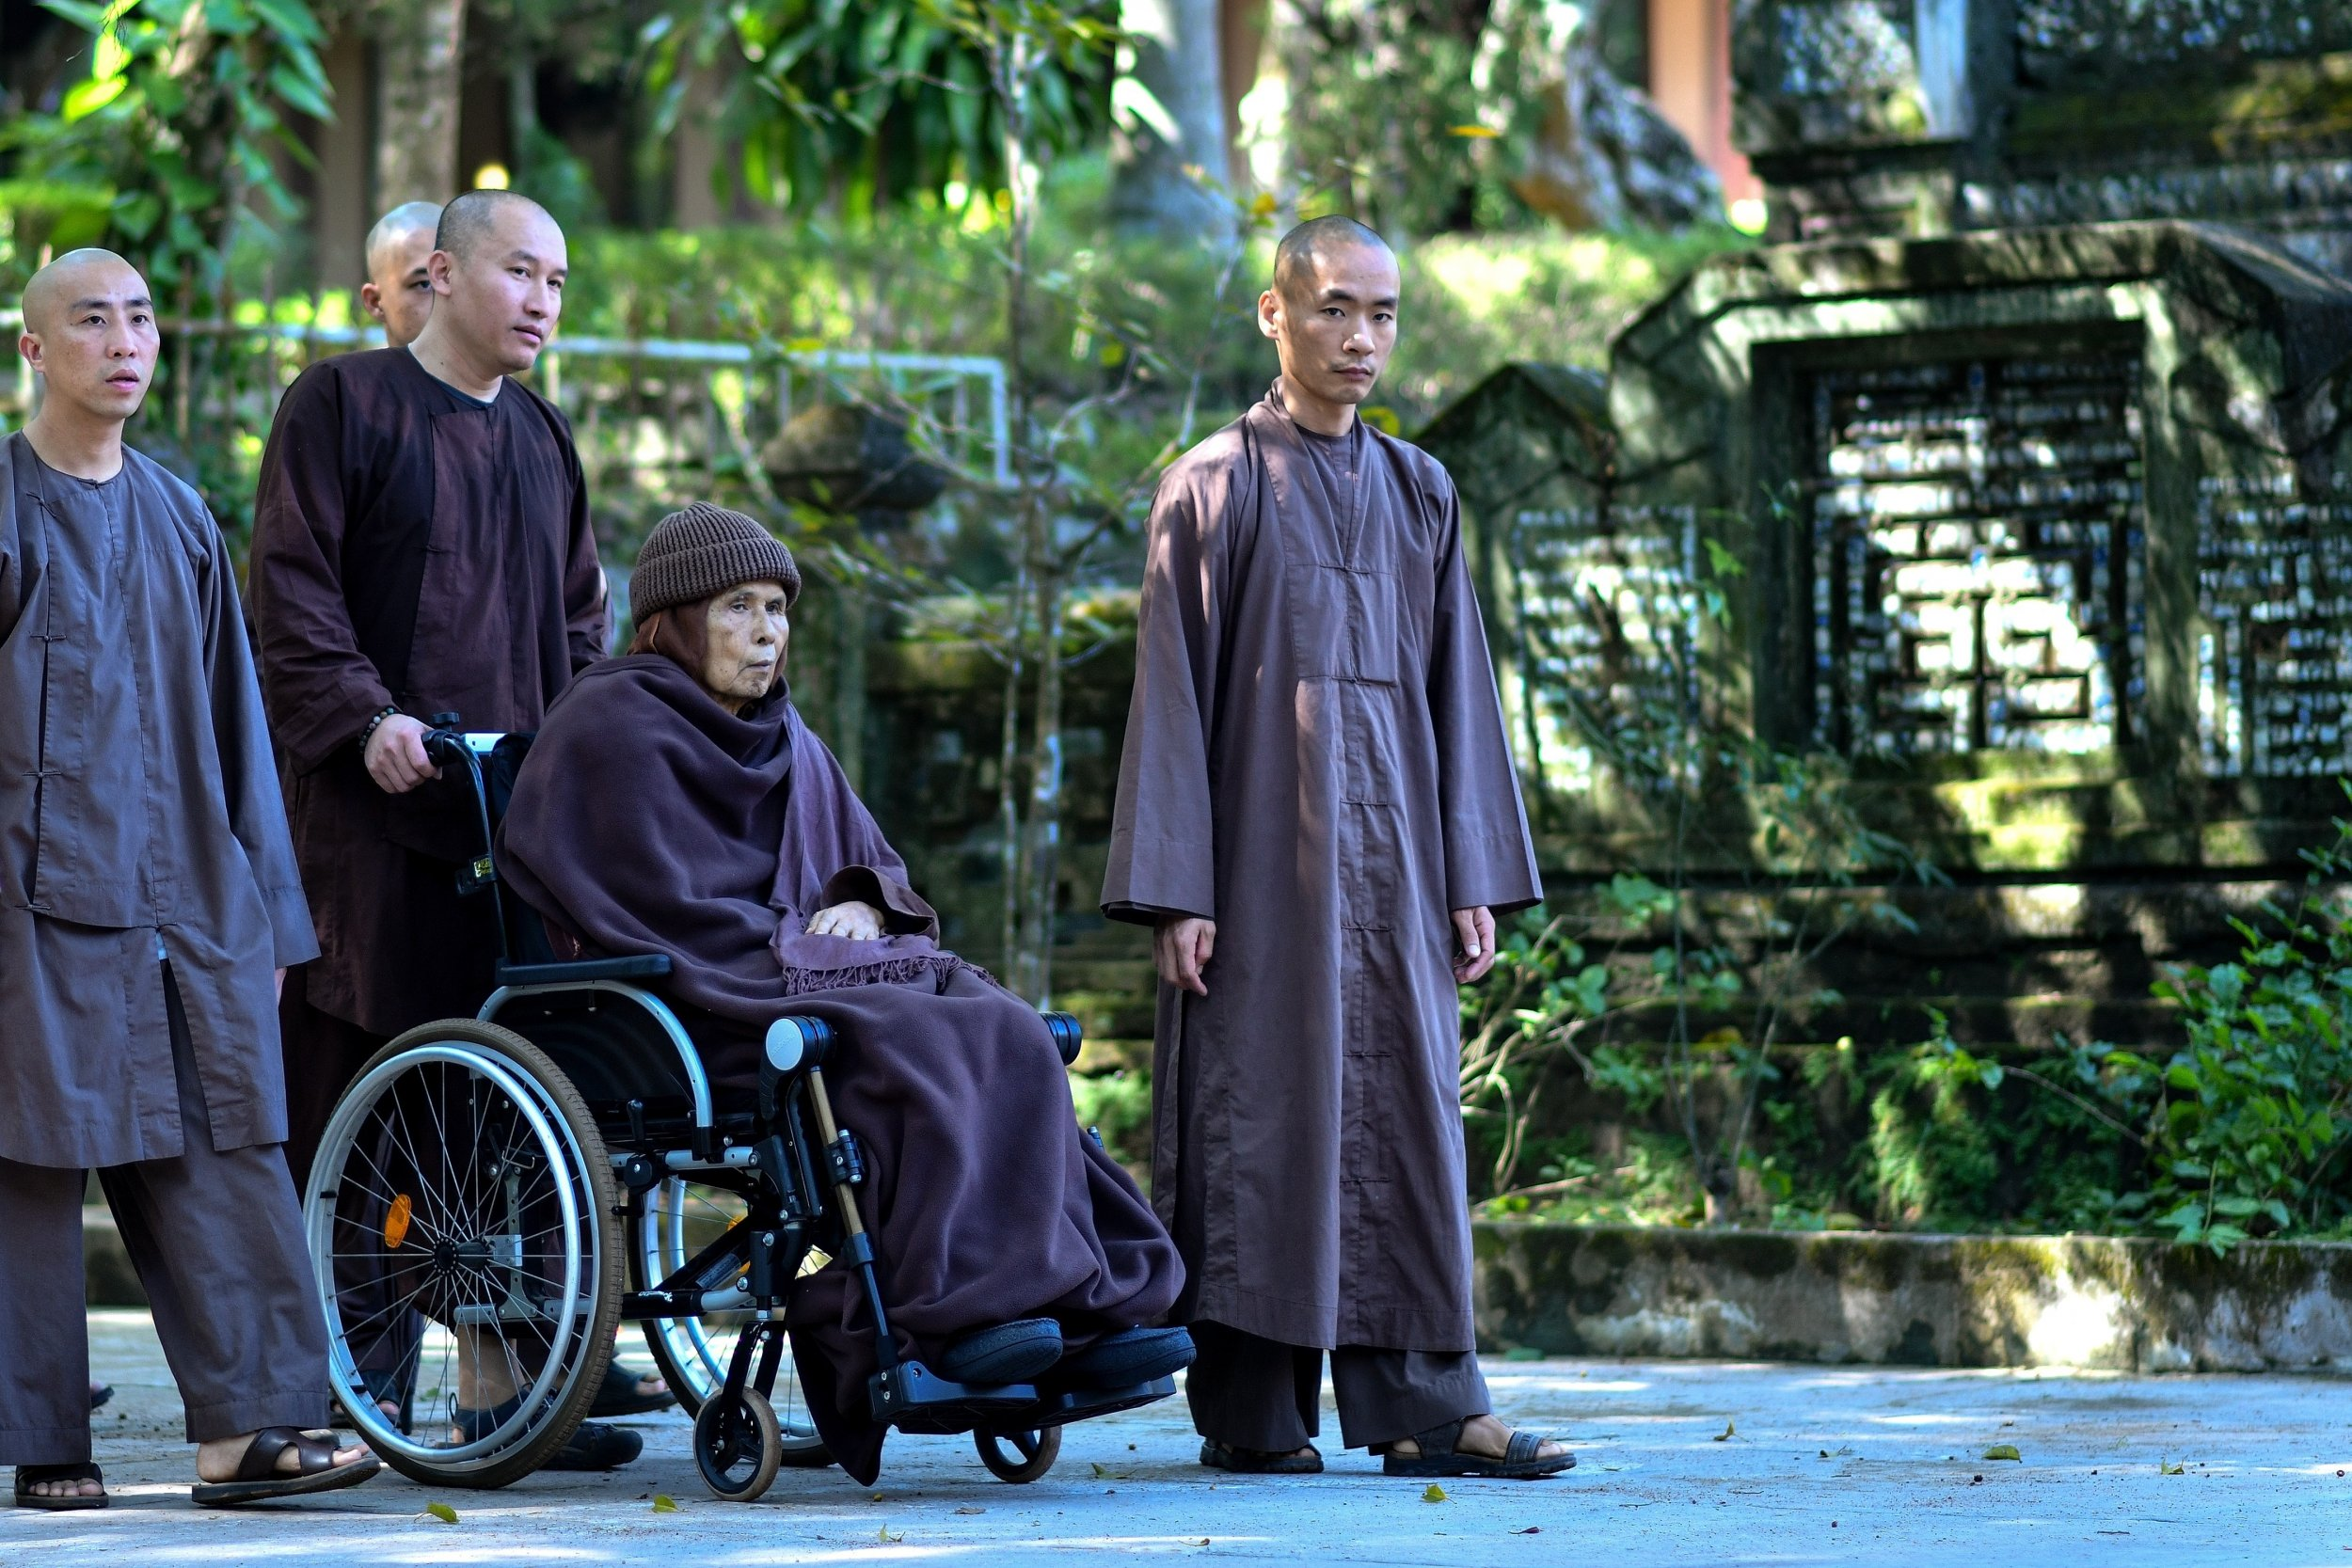 Thich Nhat Hanh The Buddhist Monk Responsible For The Mindfulness